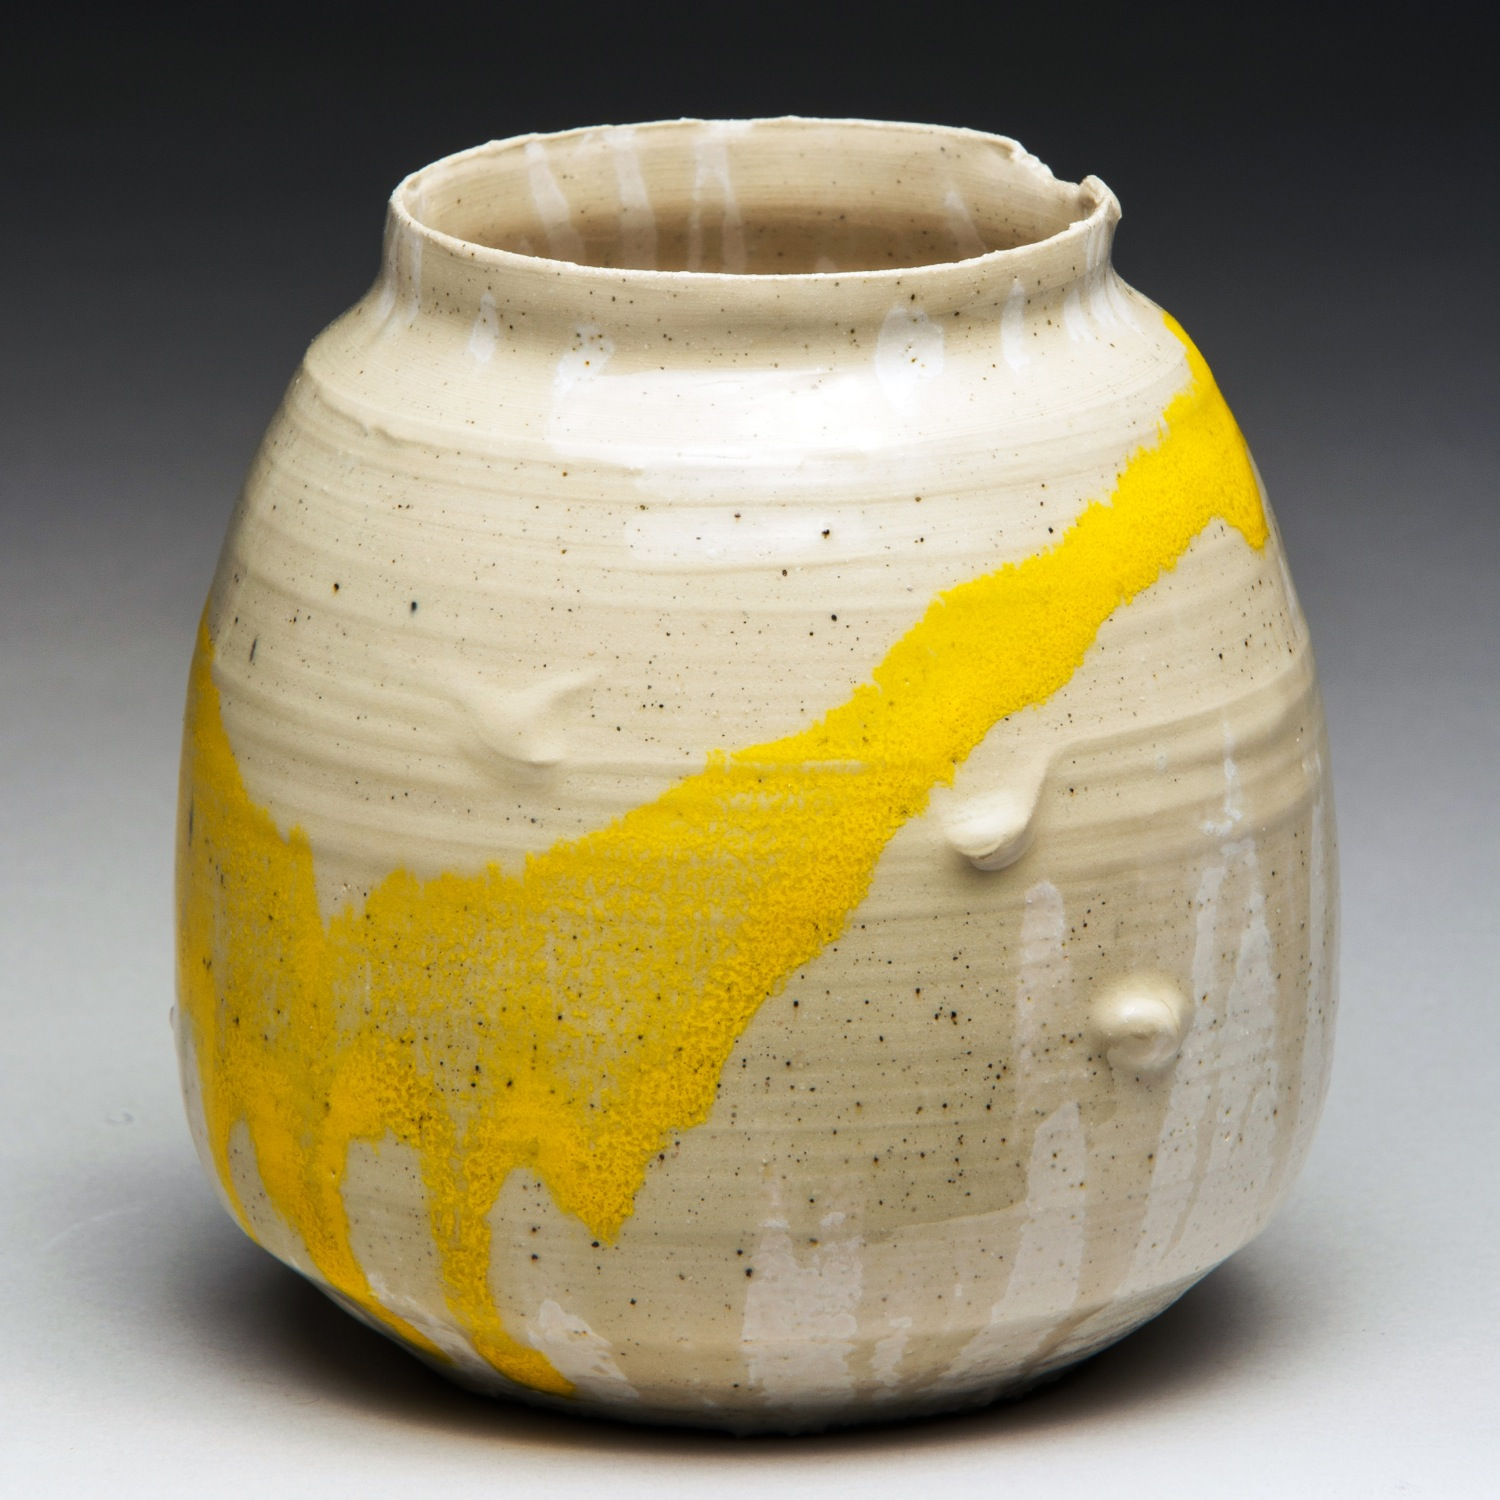 """""""Olympic Gold for Sedentary State"""", Stoneware Vase, 11.5cm Tall x 11.5cm Diameter (4.5"""" x 4.5"""")"""